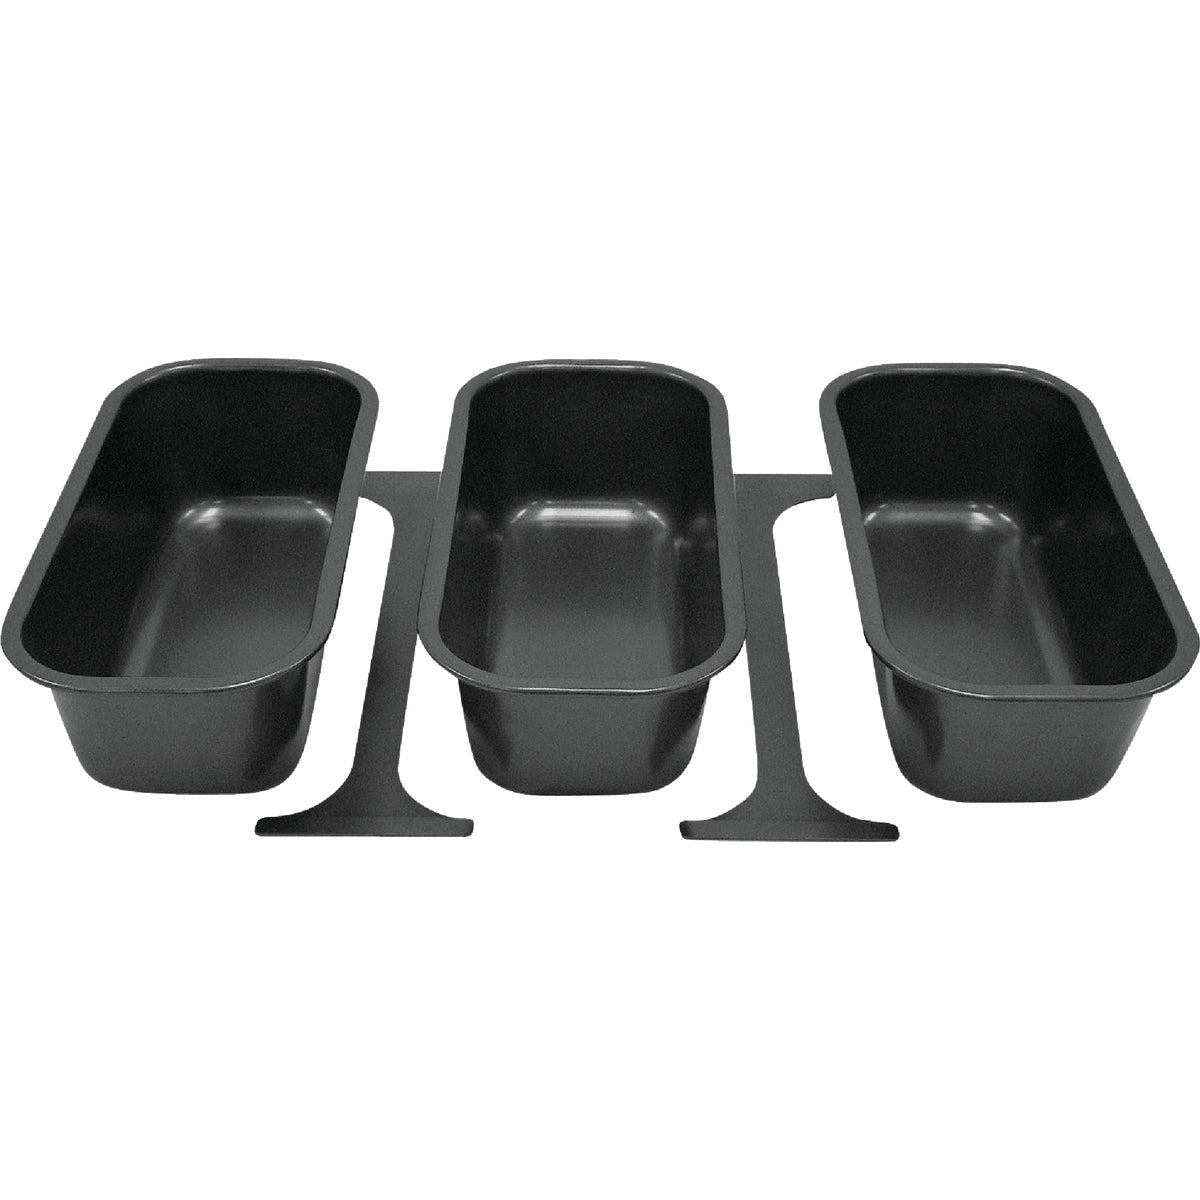 3PC BUFFET KIT - 4908-12-40PR by Metal Ware Corp